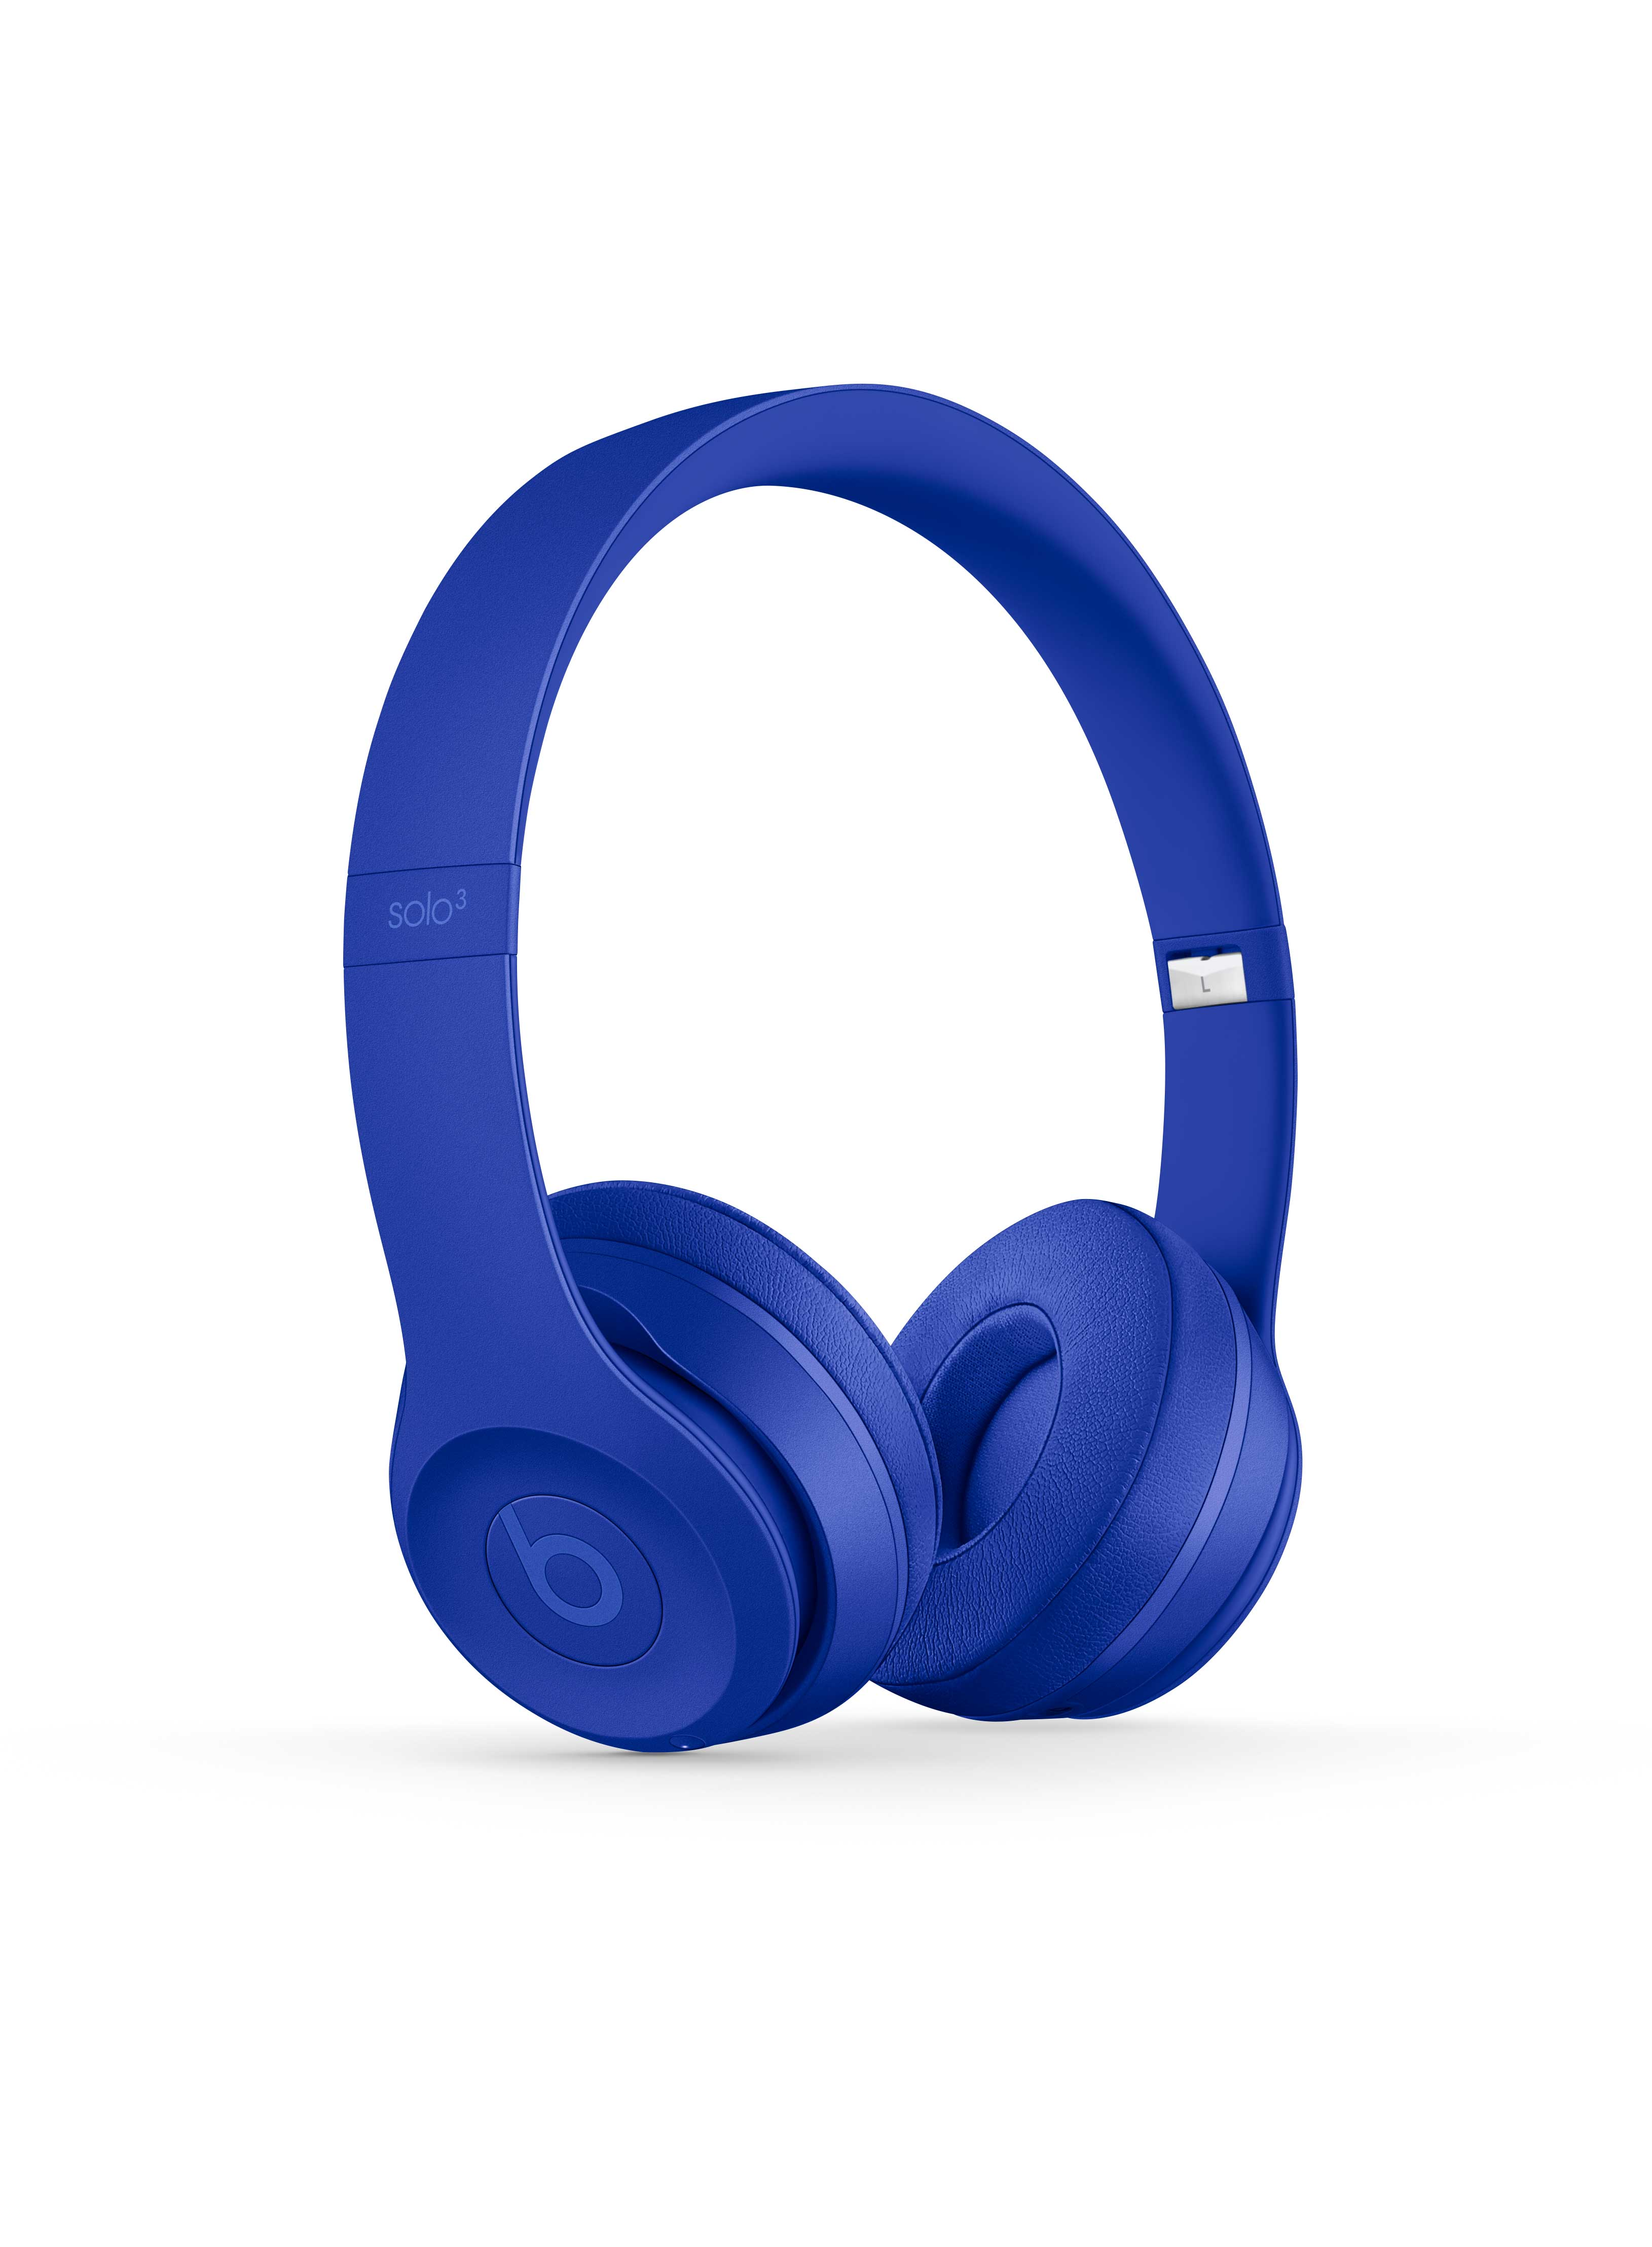 Beats Solo3 Wireless On-Ear Headphones - Neighborhood Collection